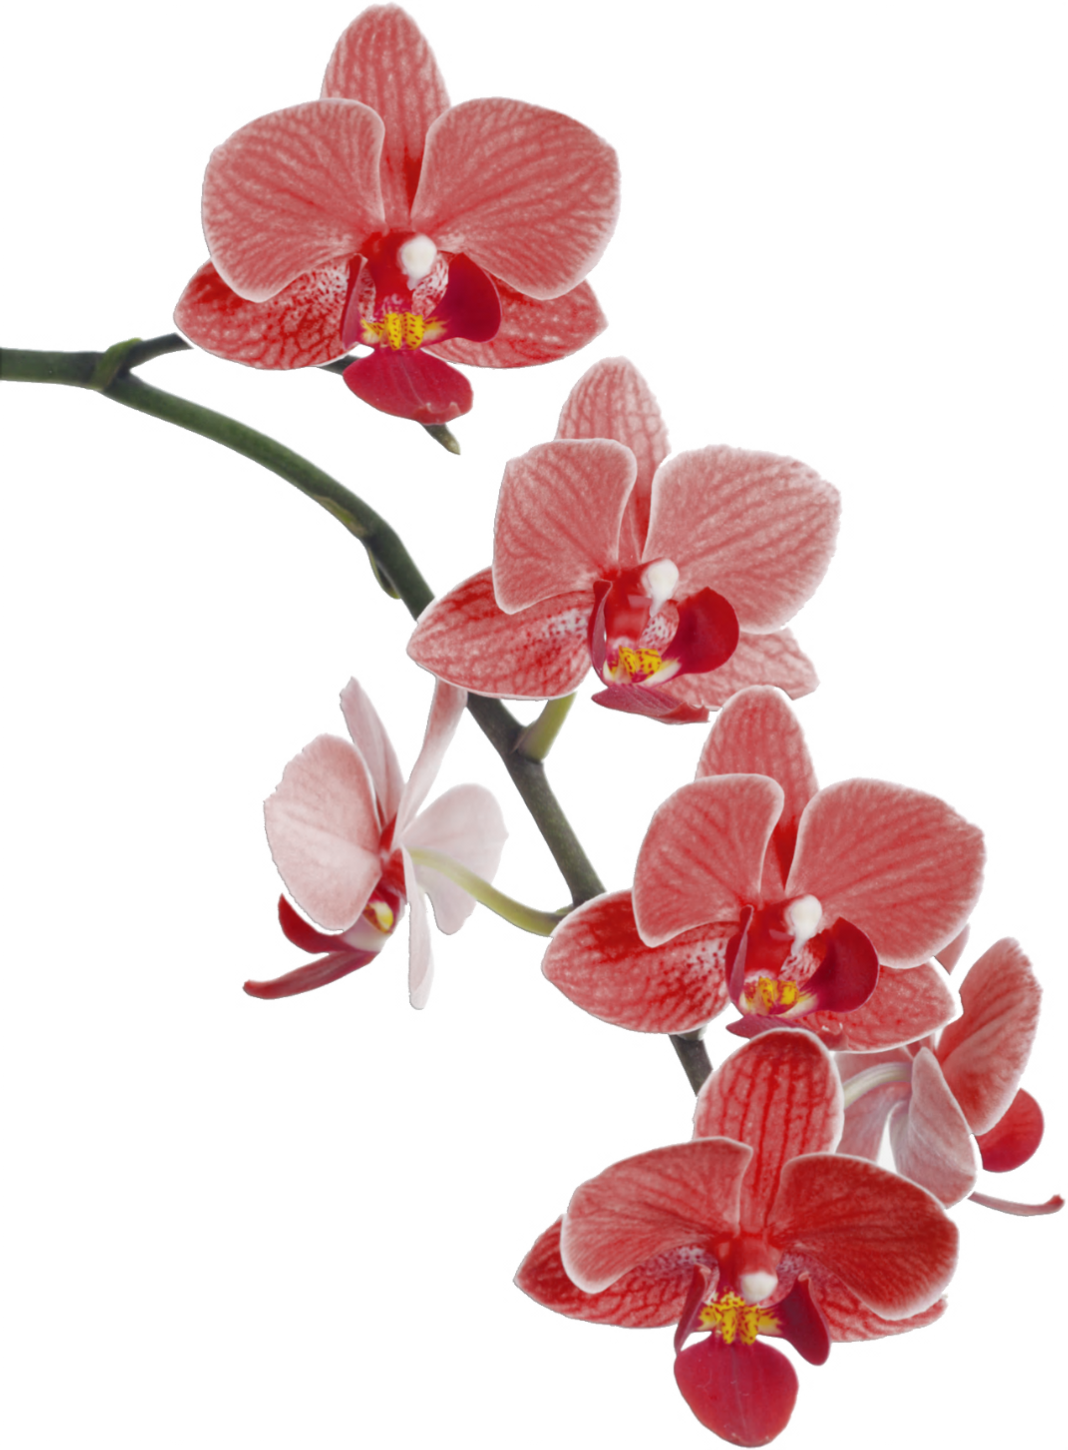 Imágenes para imprimir-Free Printables | Pinterest | Orchid and Flowers